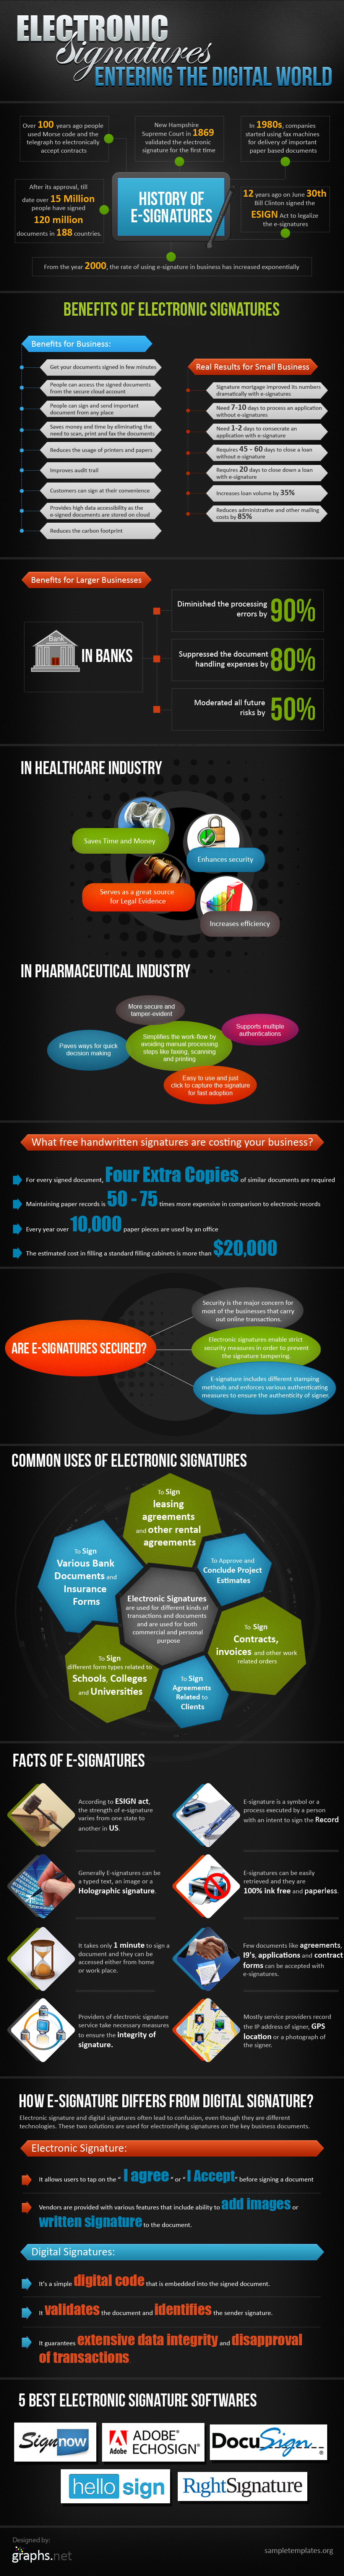 Electronic-Signatures influencing the Digital World